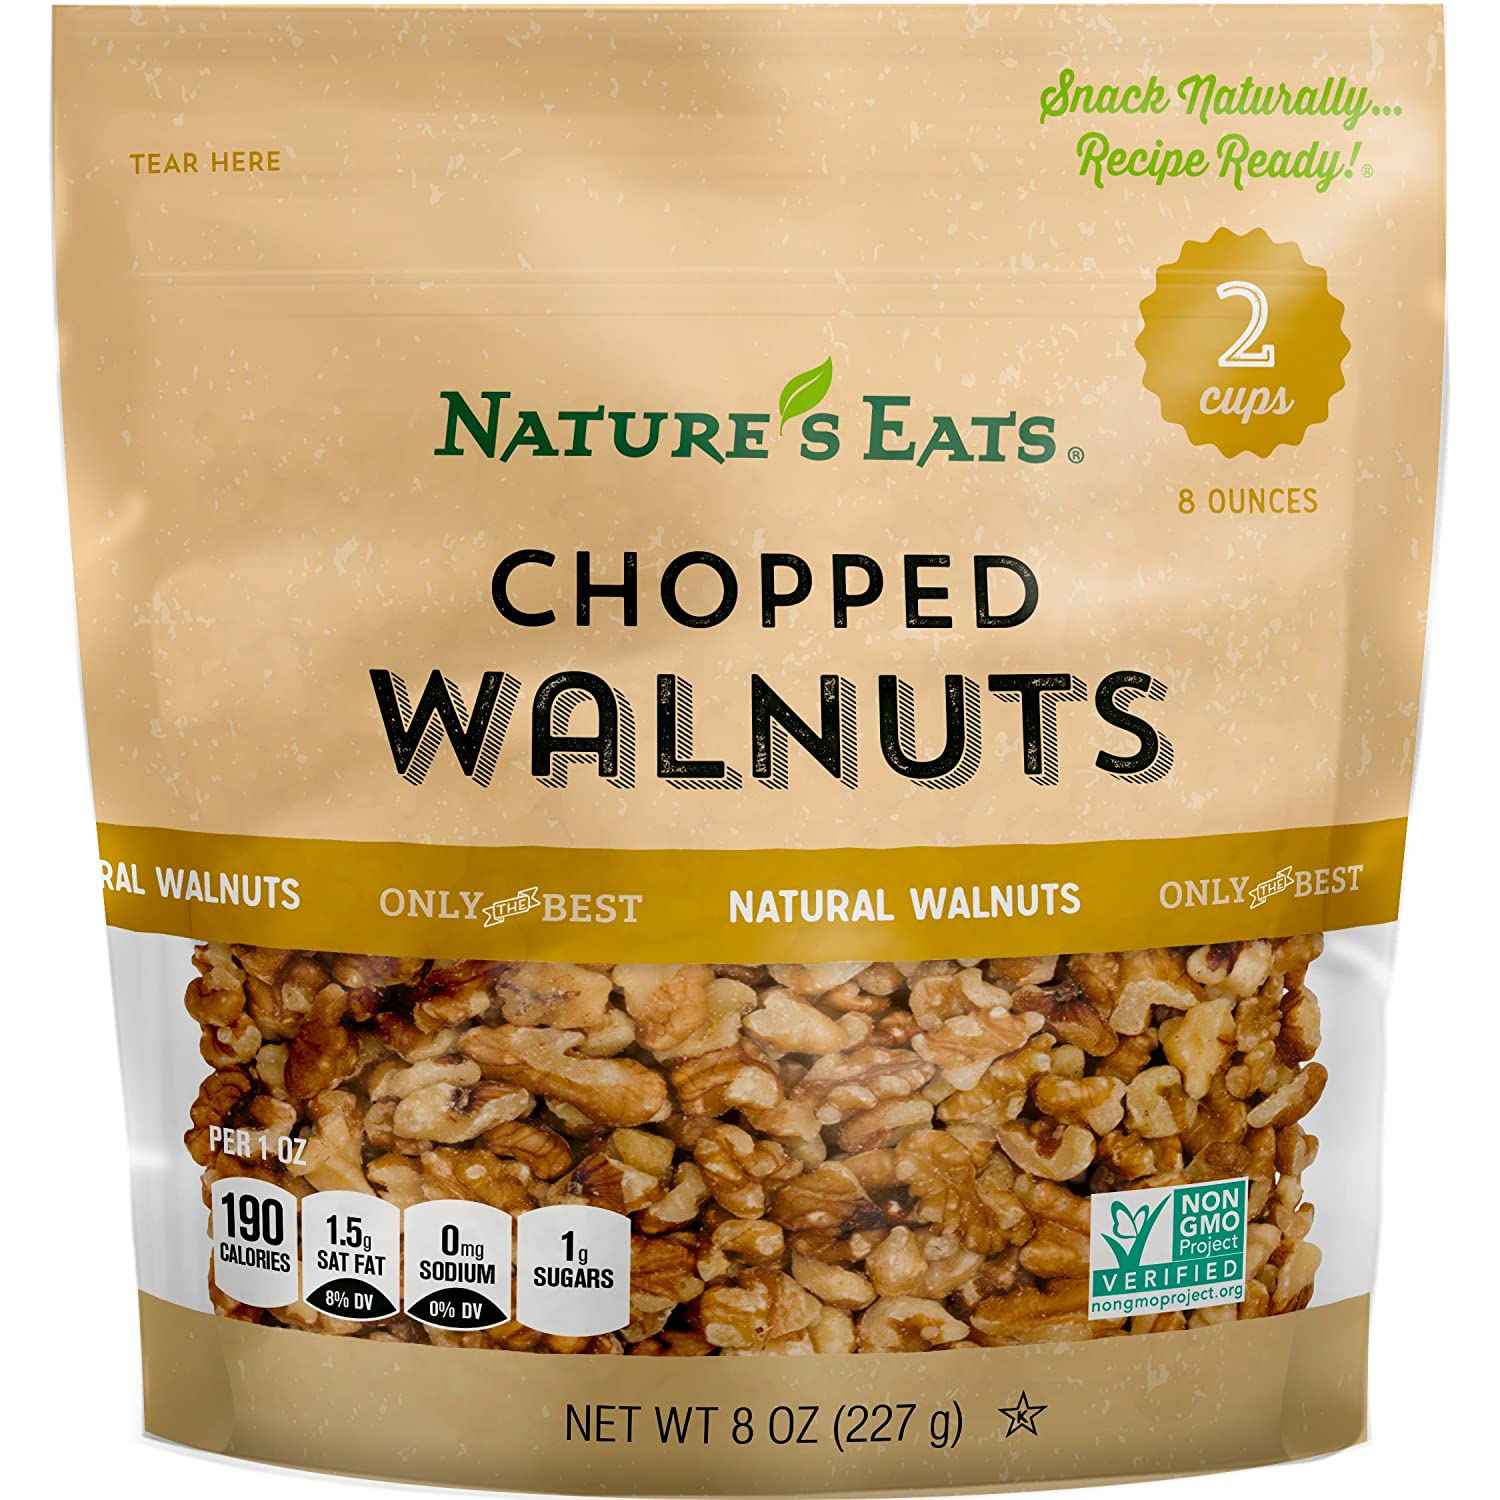 Nature's Eats Chopped Walnuts, 8 Ounce